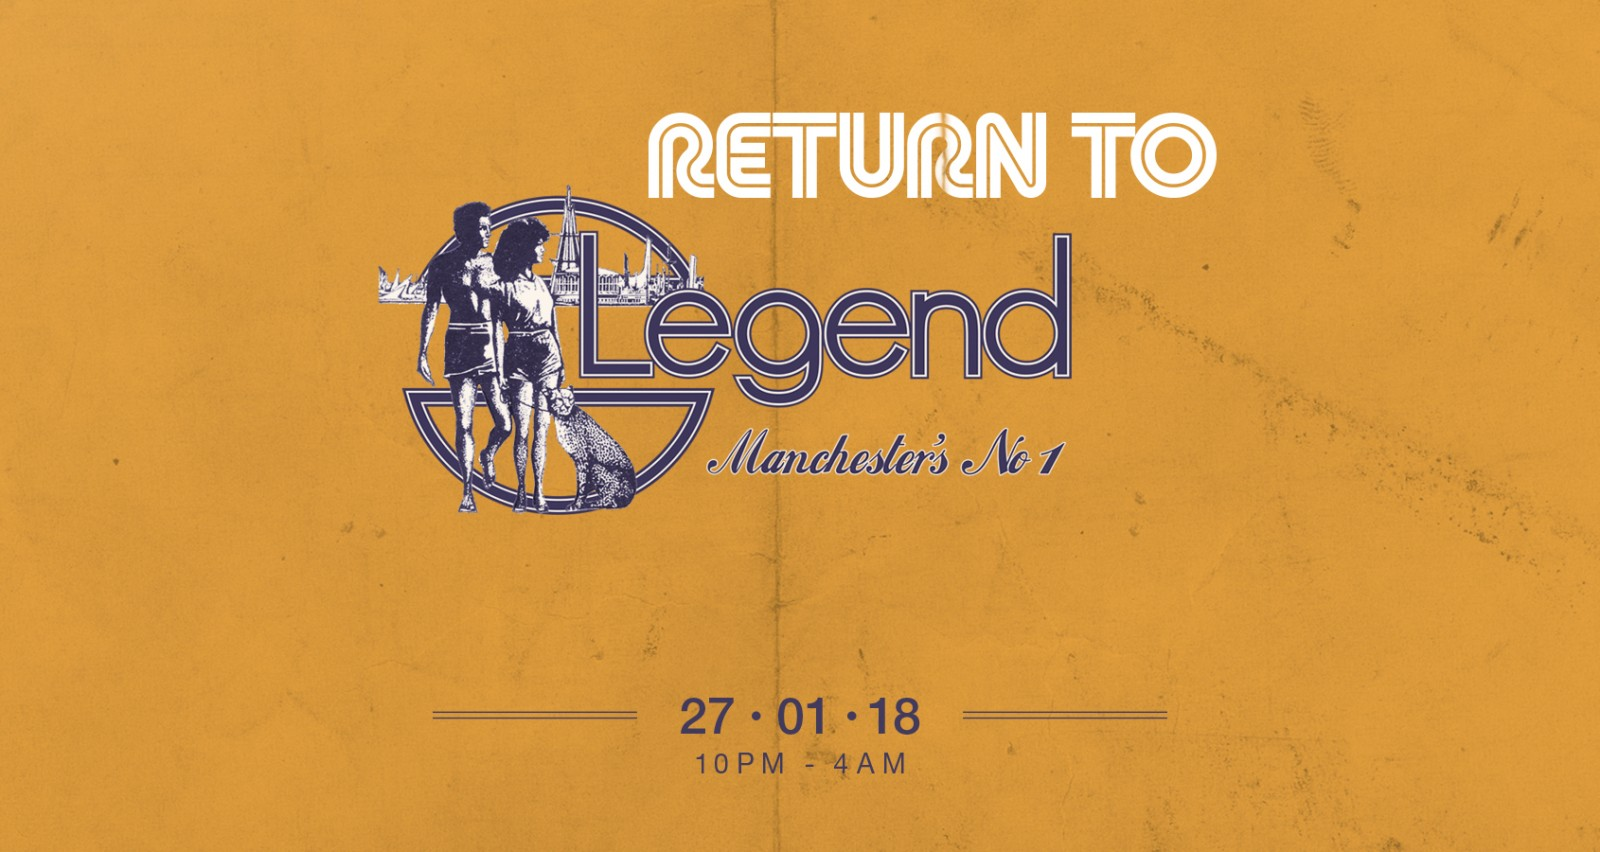 Return to legend